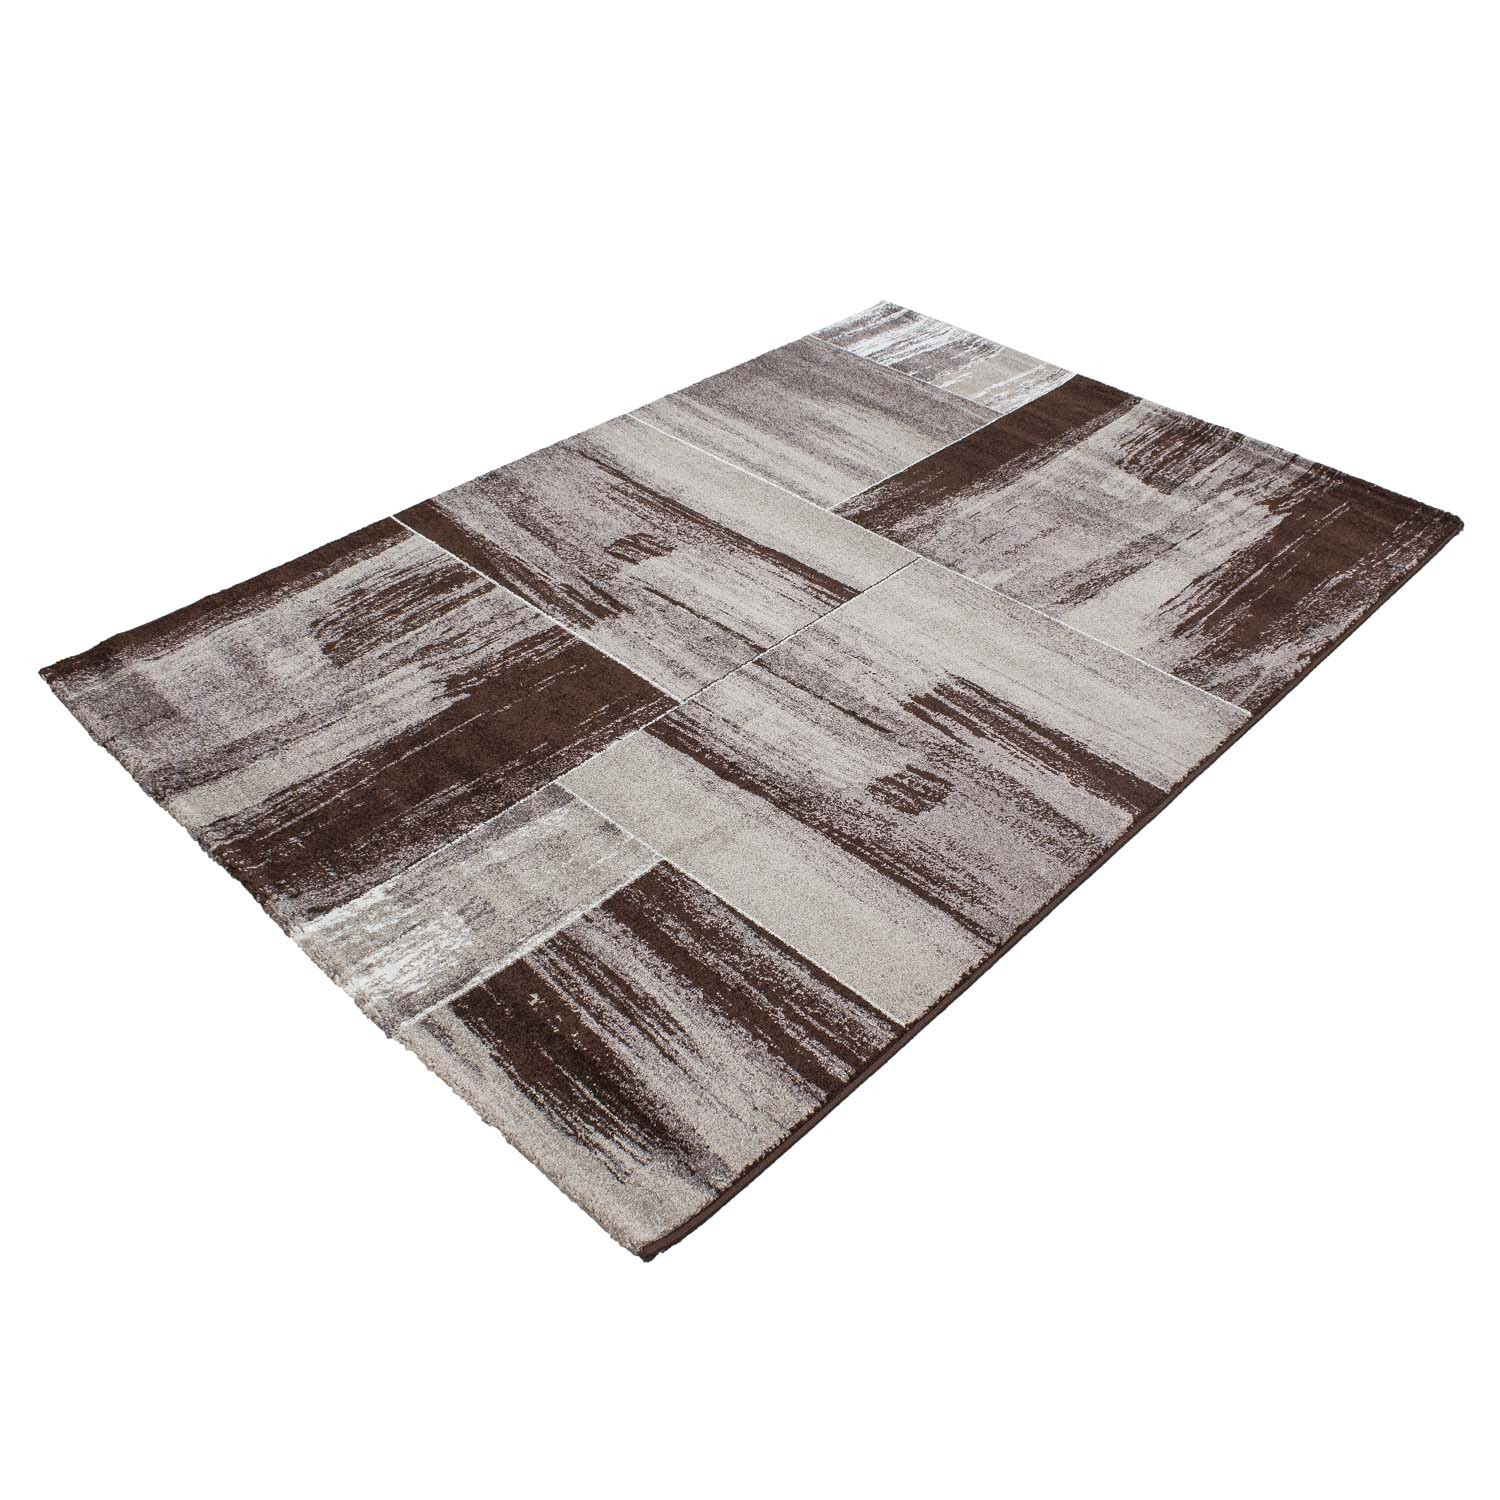 tapis vintage brun marron pour salon crystal. Black Bedroom Furniture Sets. Home Design Ideas